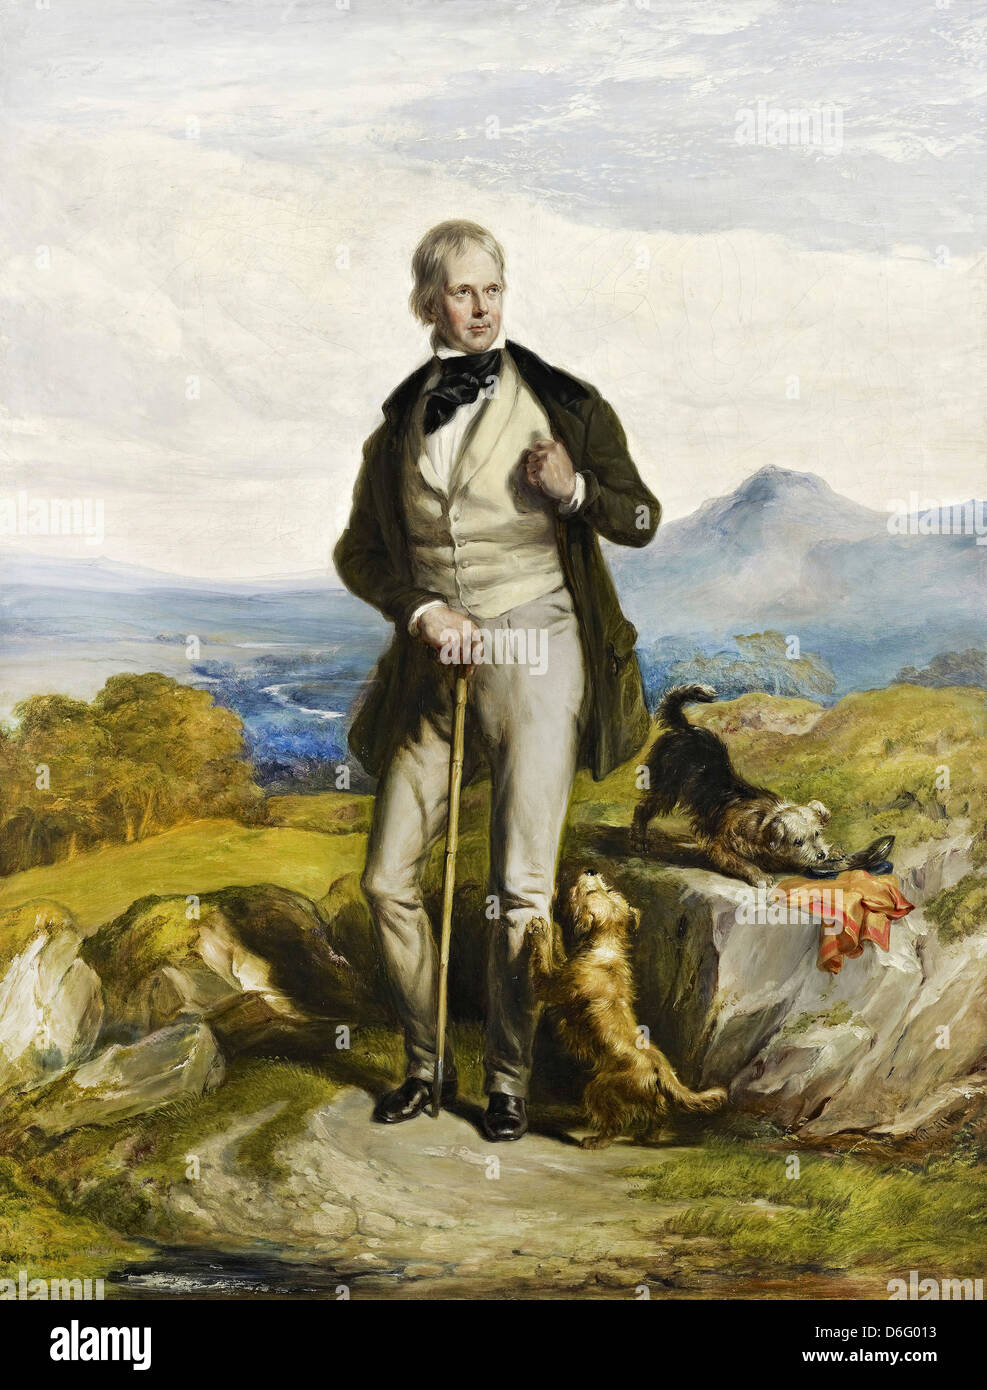 Sir William Allan, Sir Walter Scott, 1771 - 1832. Novelist and poet 1844 Oil on canvas. National Gallery of Scotland, - Stock Image